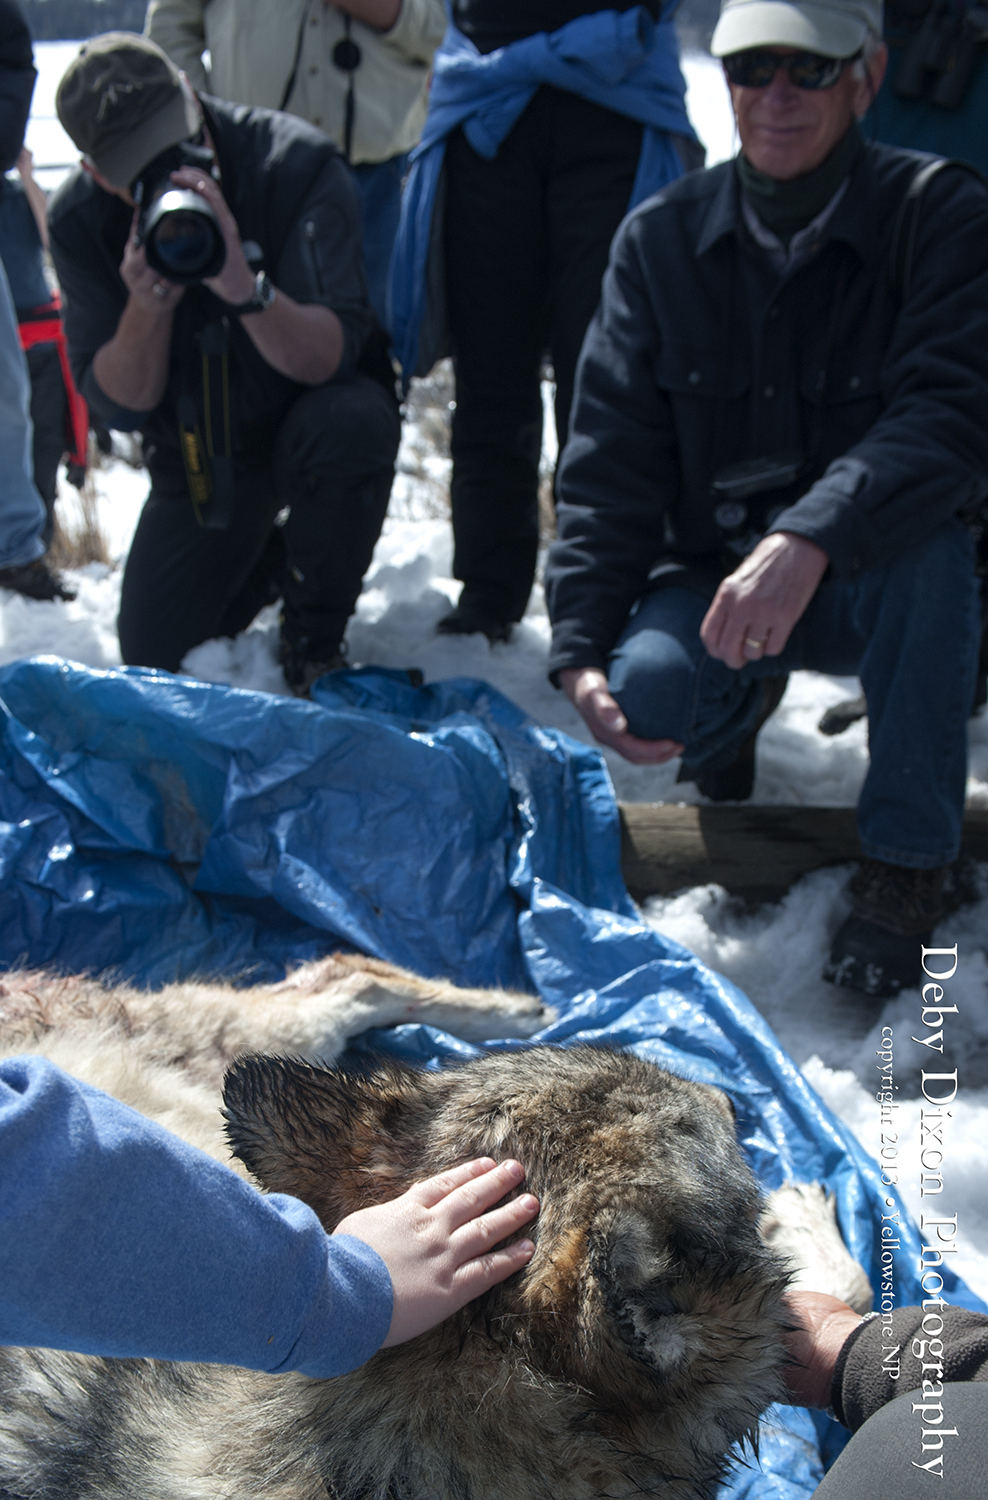 The Yellowstone Wolf Project skied or snowshoed across the valley to retrieve the body of 759 and afterwards Doug Smith allowed everyone to see and pet her and to ask him questions.